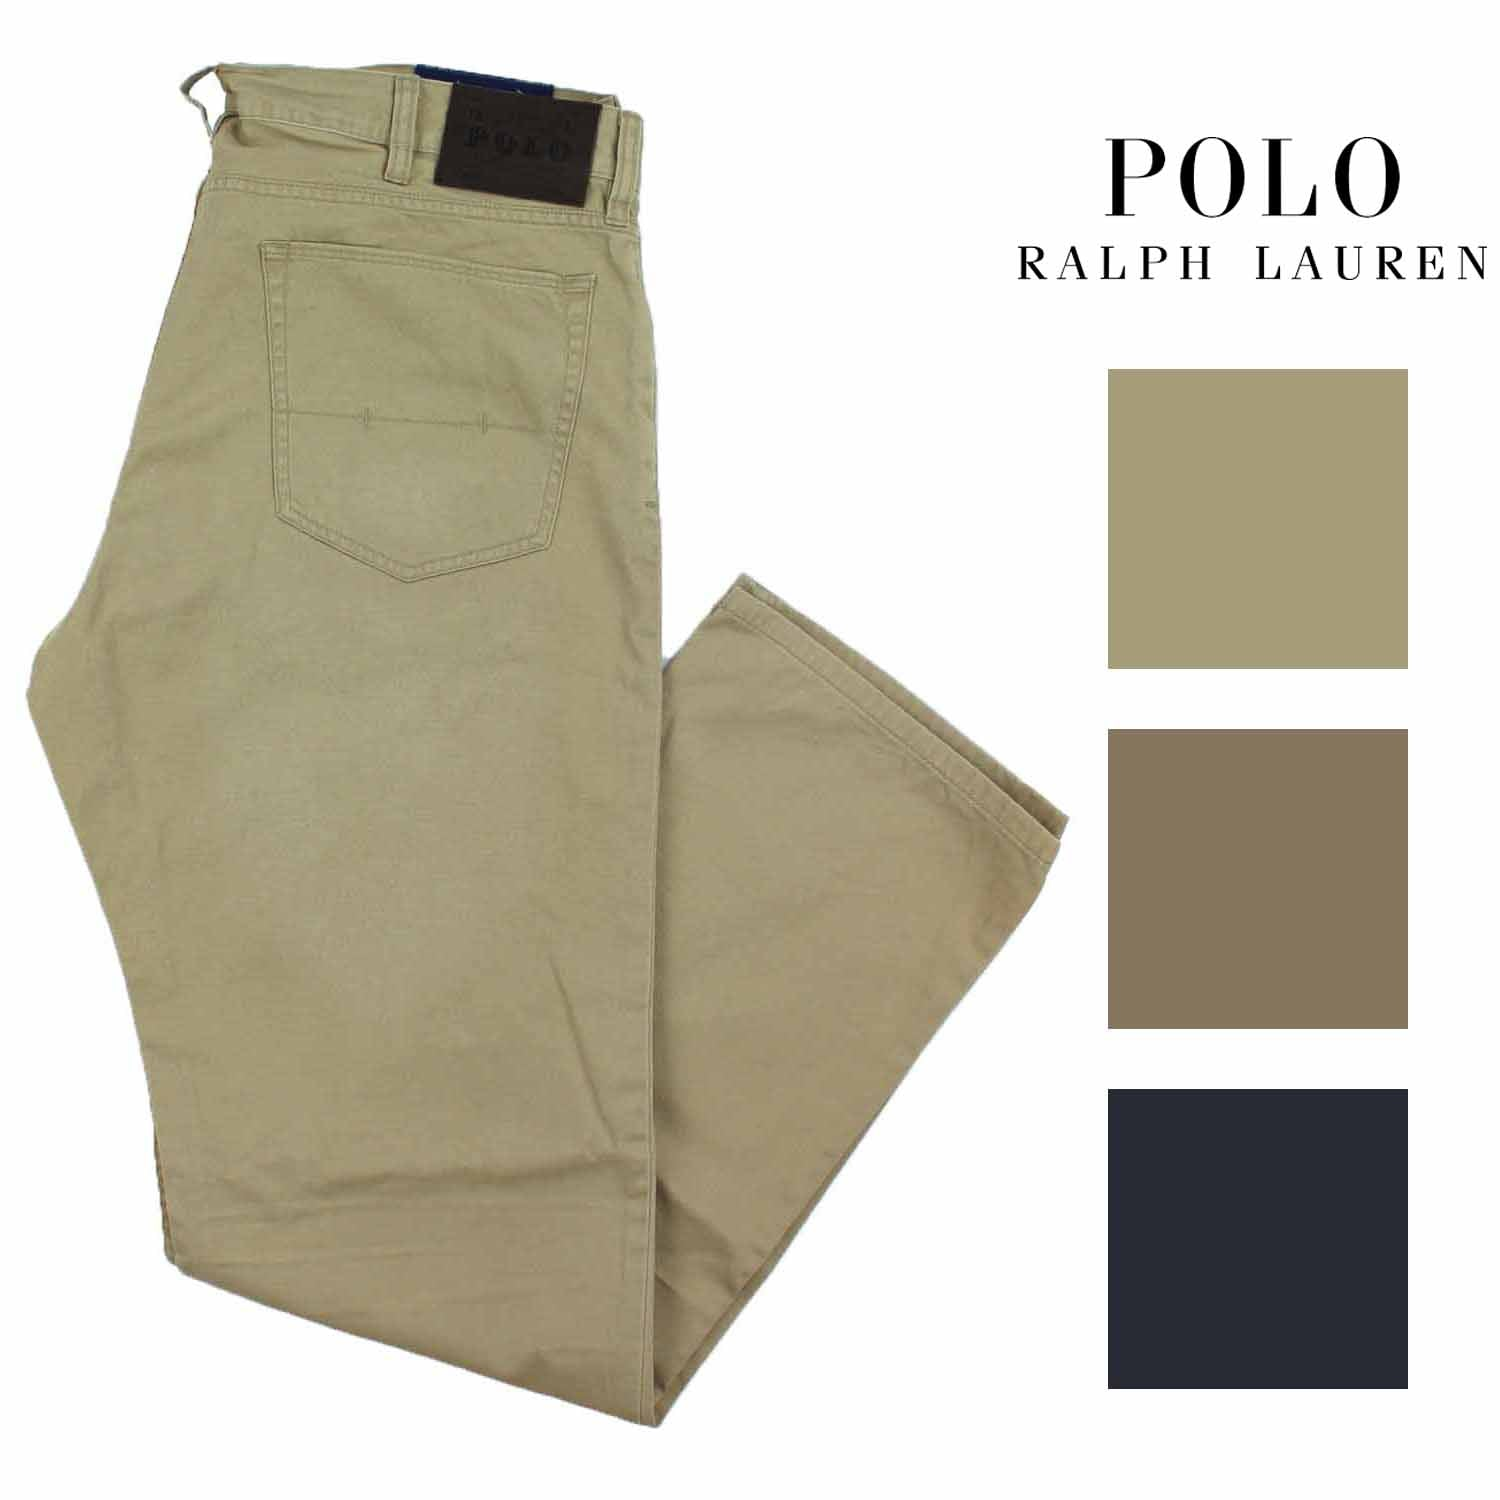 – Munki Chino Polo Pocket Shop Ralph Five Lauren Fit Pants Mens Straight TFJcKl1